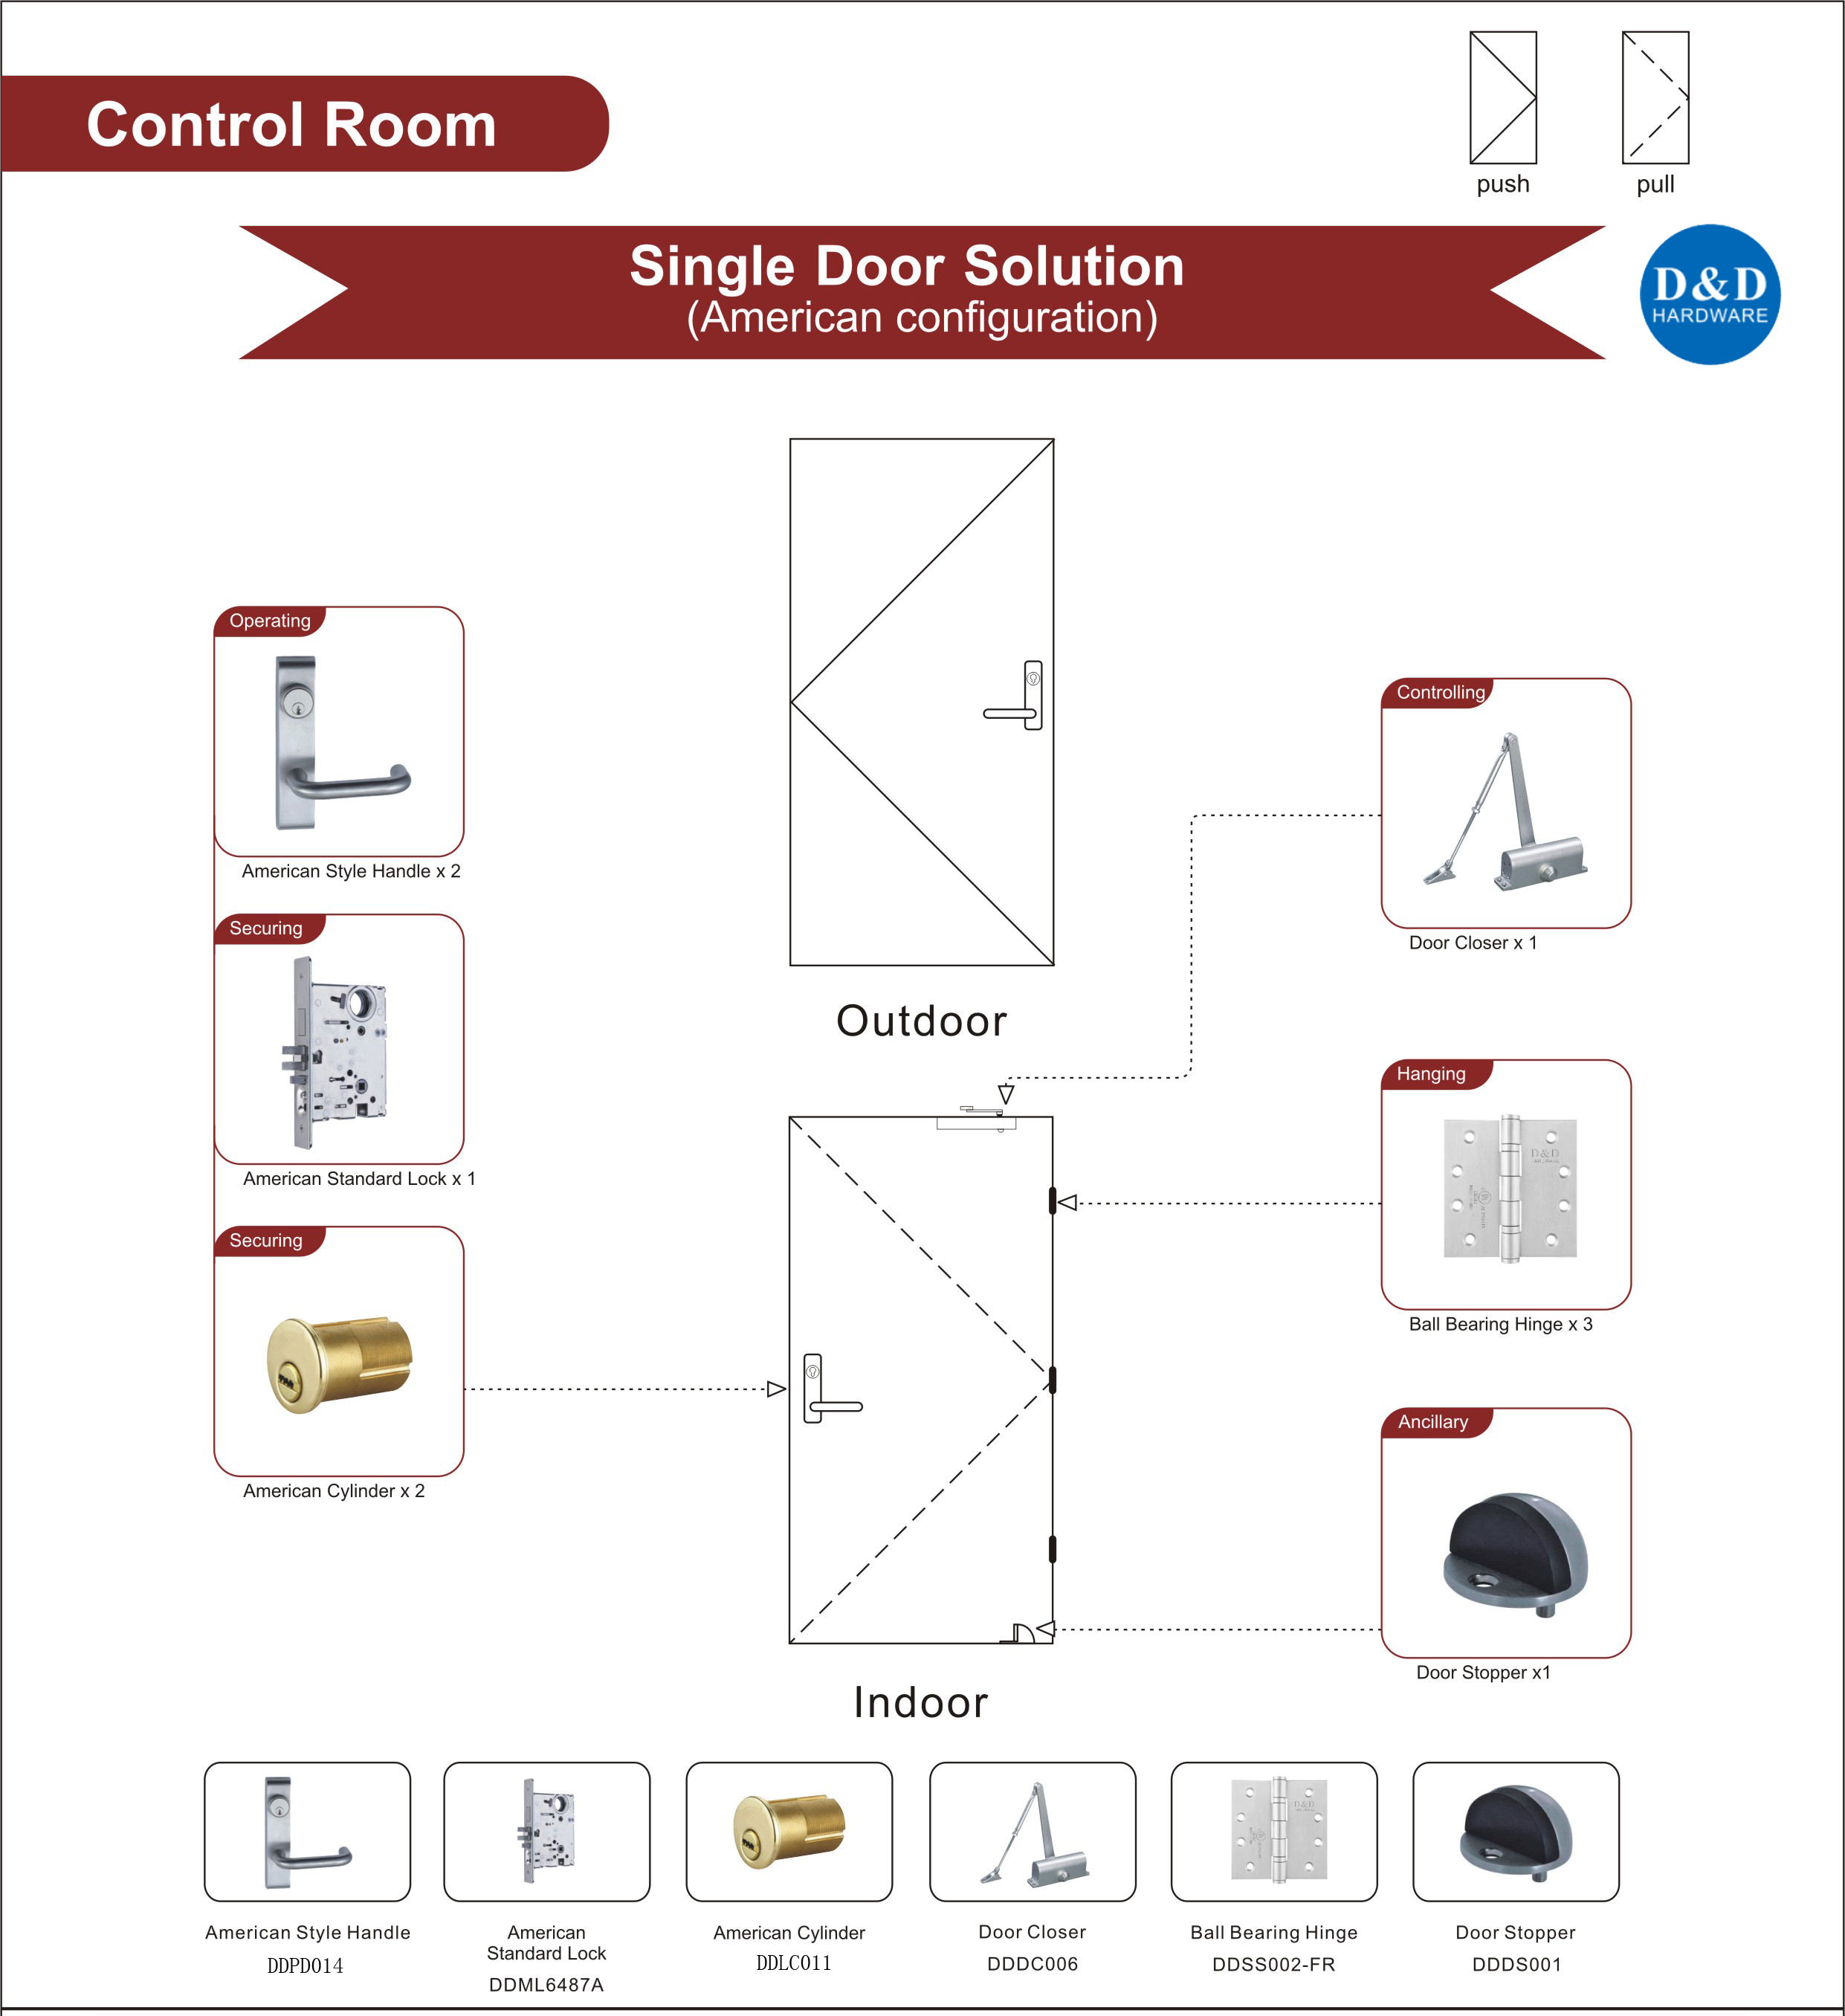 Fire Rated Wooden Door Hardware For Control Room Single Door